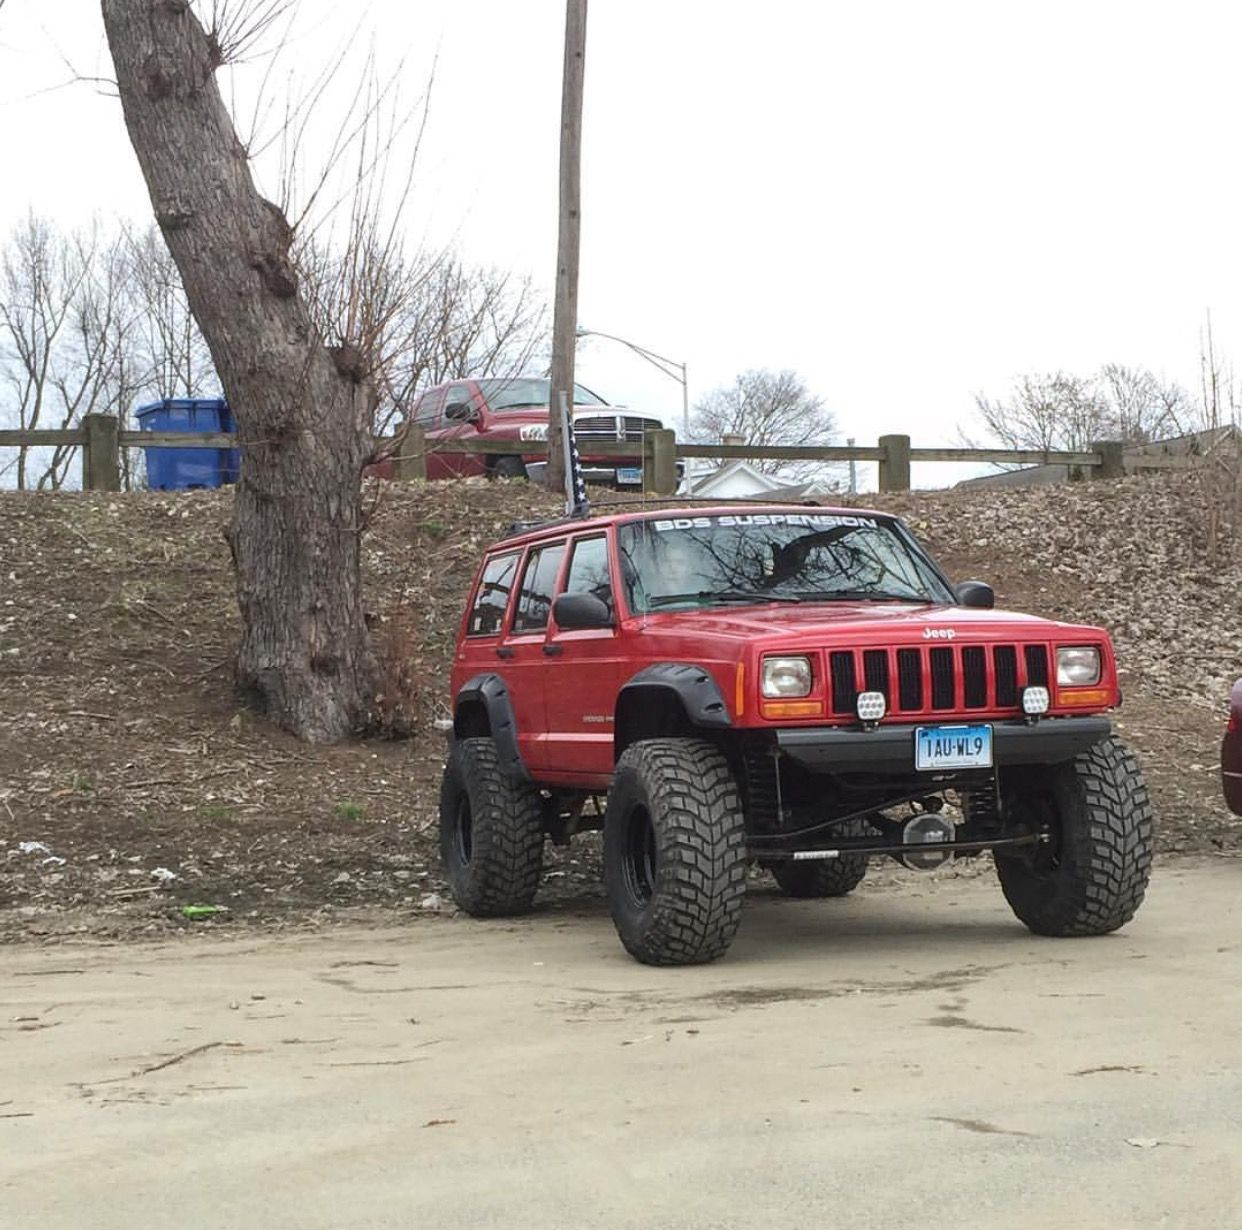 The Best Way To Find The Best Jeep Cherokee Xj Jeep Xj Jeep